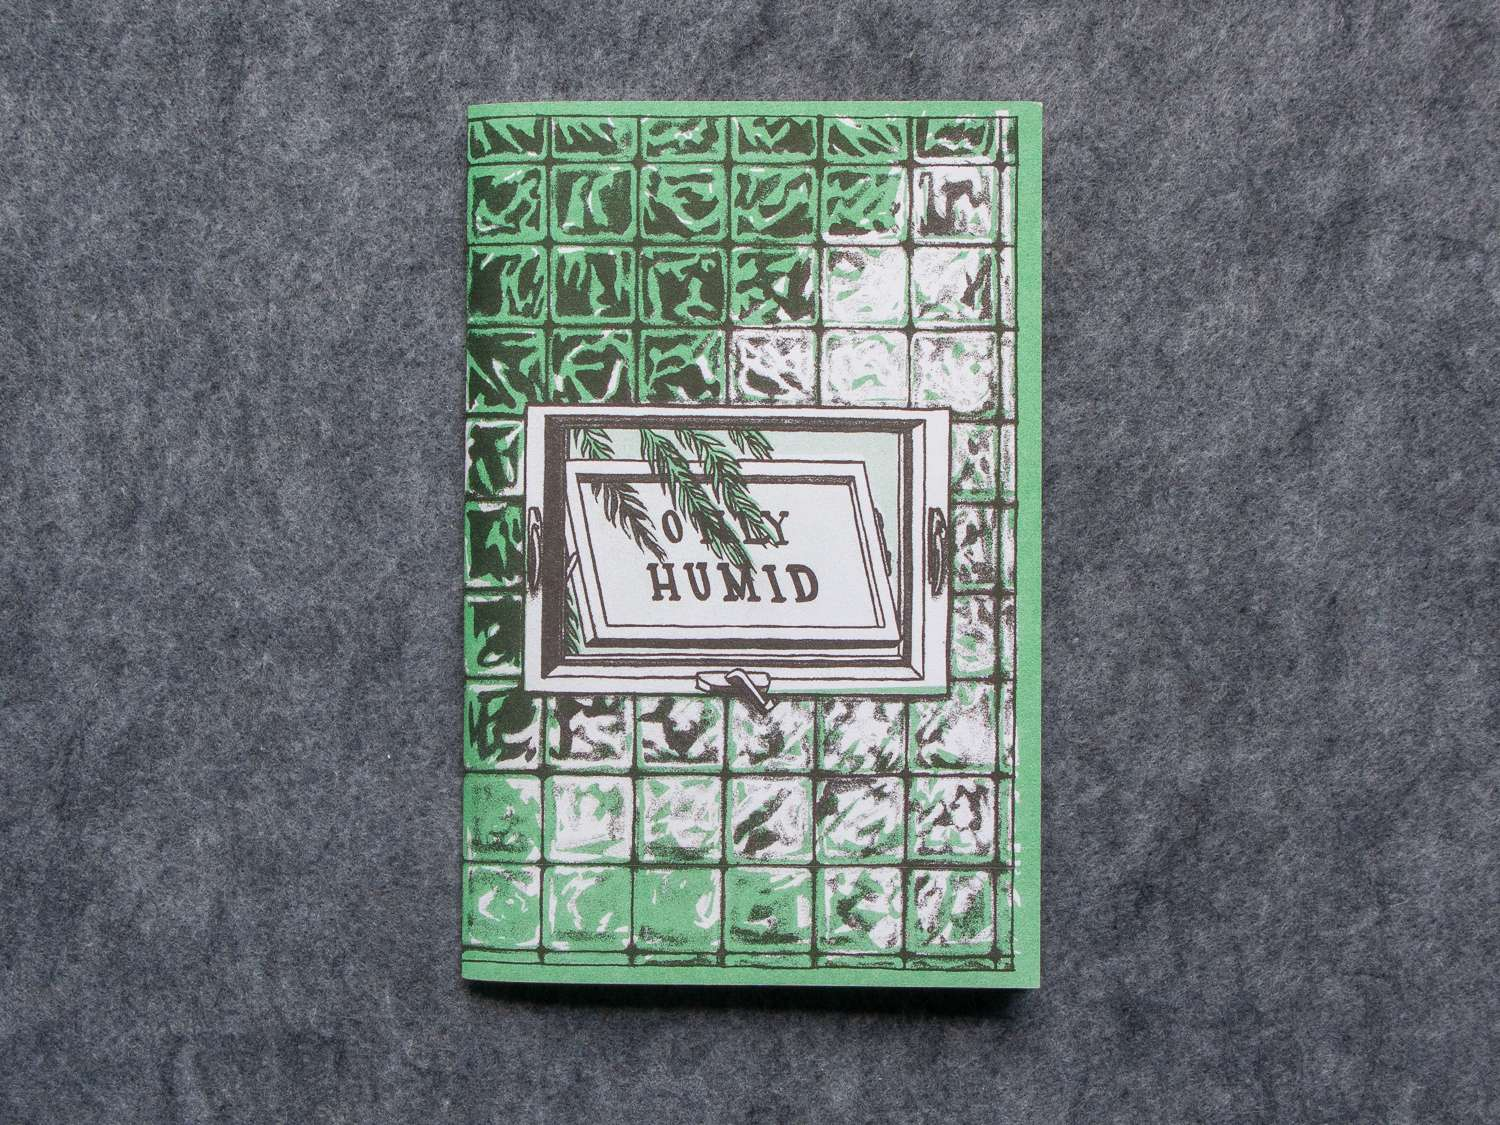 """Only Humid"" risograph zine front cover showing a tiled glass wall with a window displaying the title"